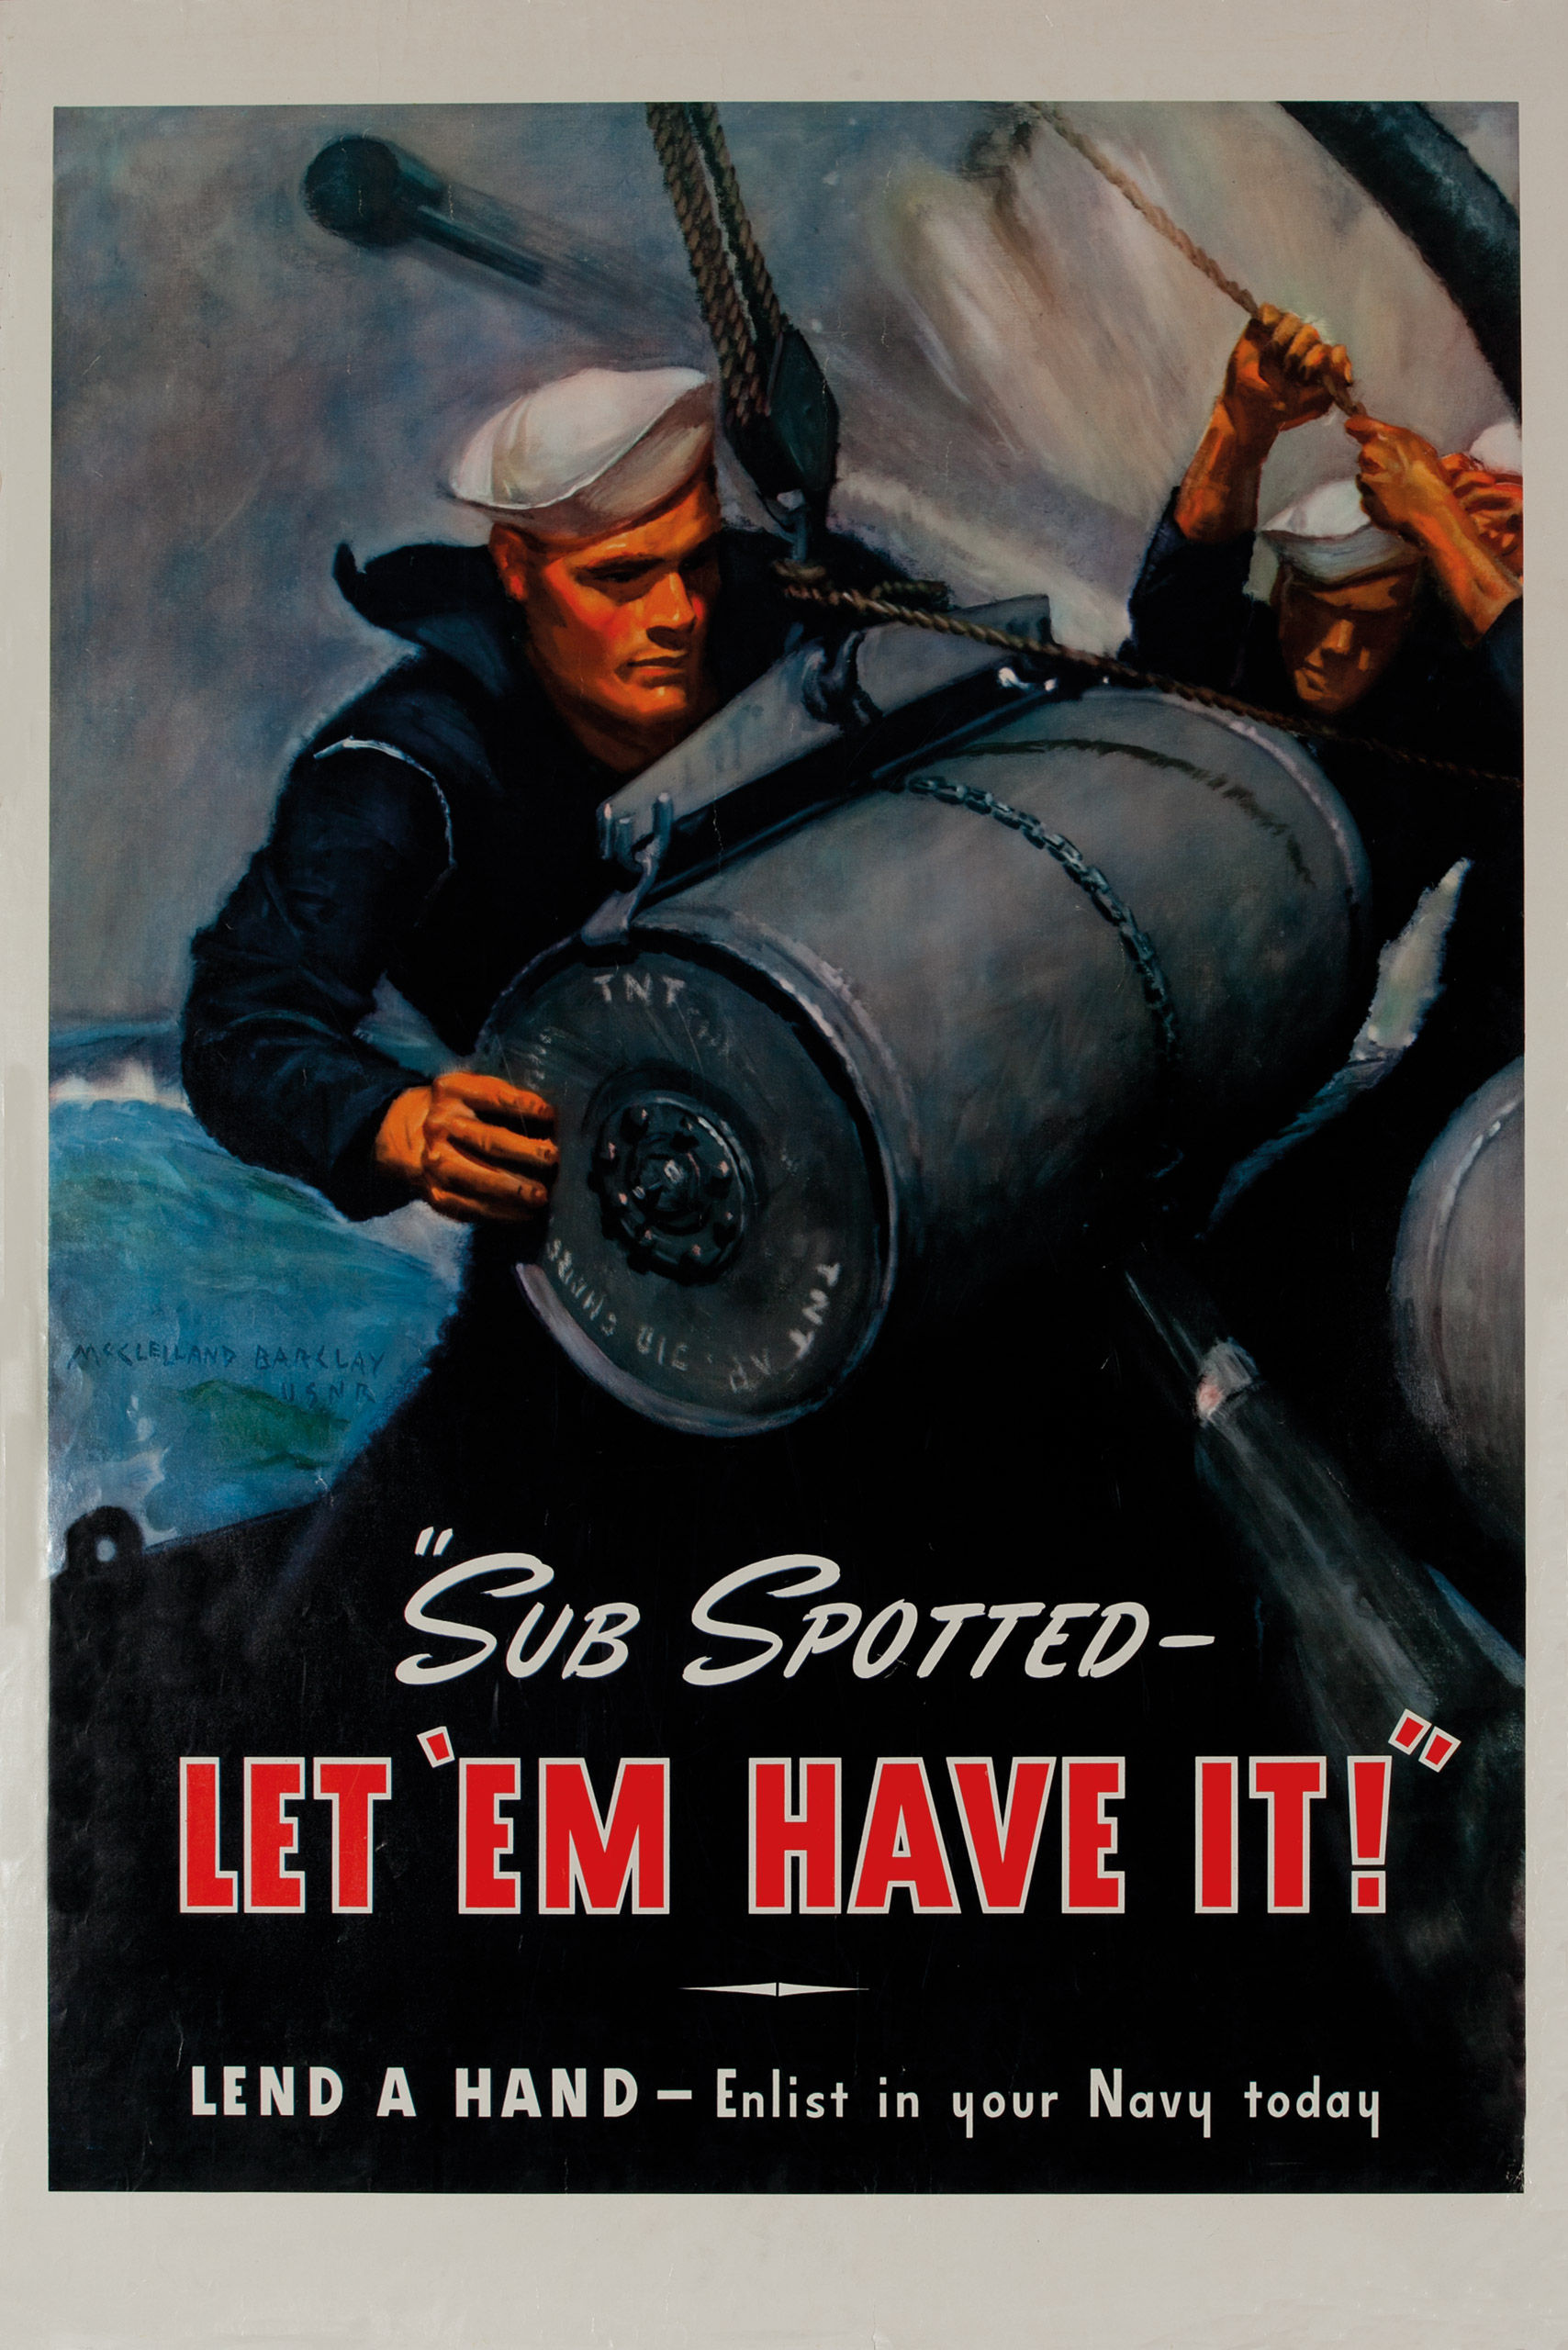 Sub Spotted—Let 'Em Have It!  Ca. 1942.